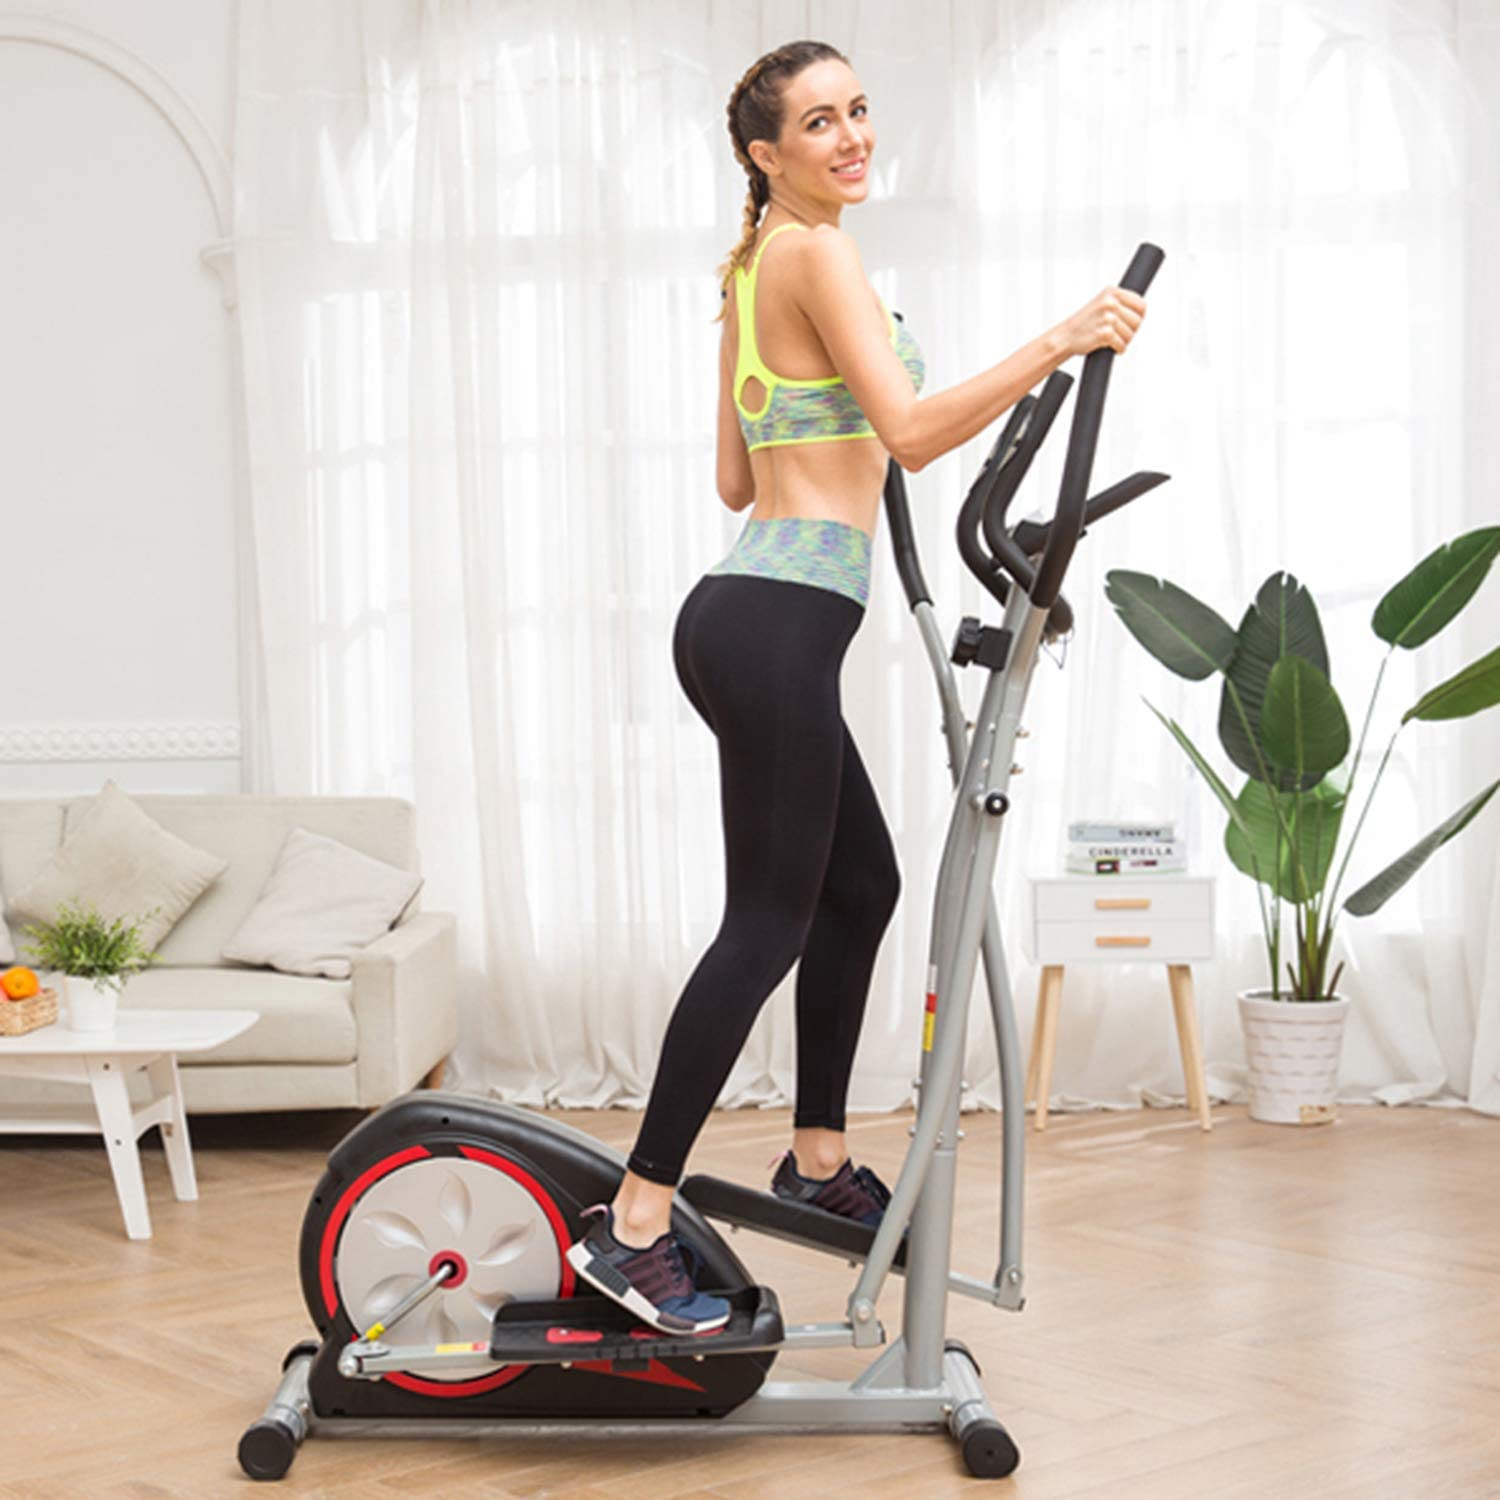 Home Elliptical Machine Exercise with LCD Monitor, Magnetic Smooth Quiet Health Fitness Workout Machines